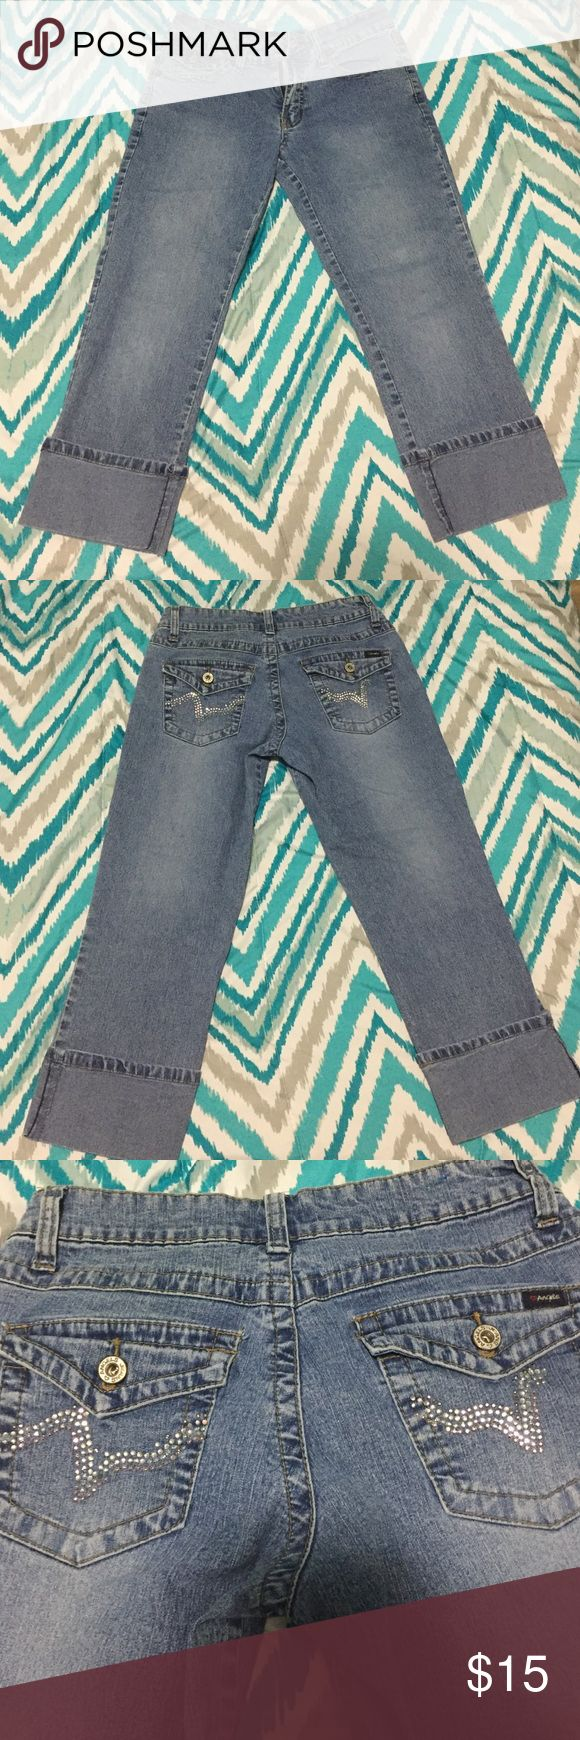 Angels: Capri Jeans These are freaking cute, and makes the gluteus look greaaattt. Angels Pants Capris